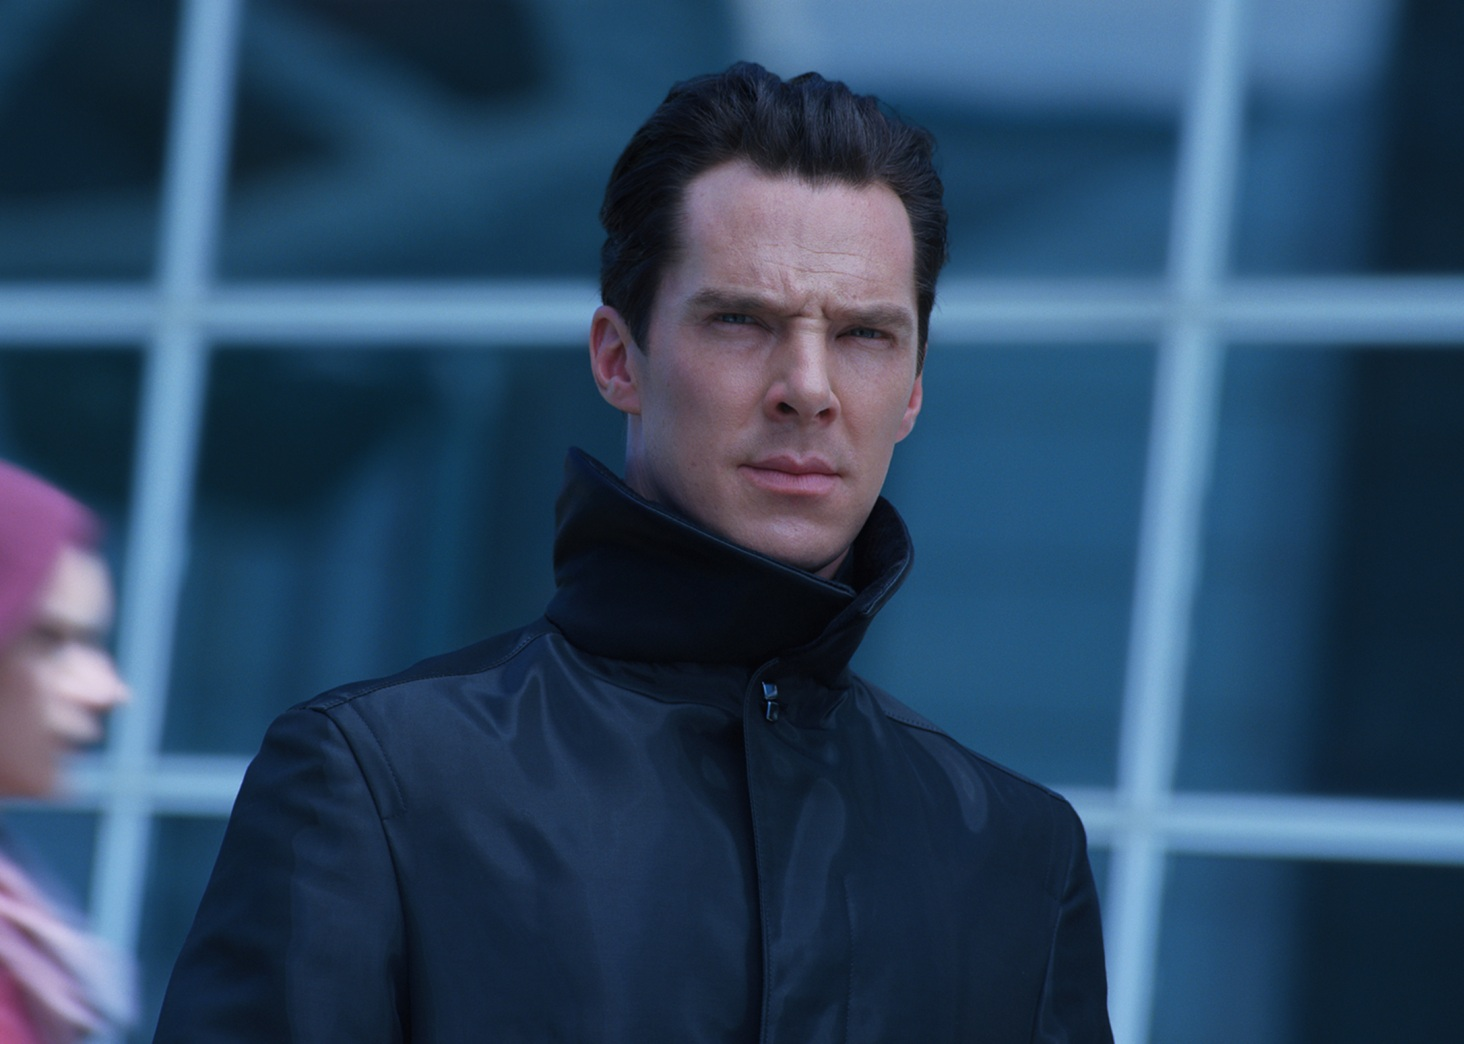 Benedict Cumberbatch as John Harrison in Star Trek Into Darkness